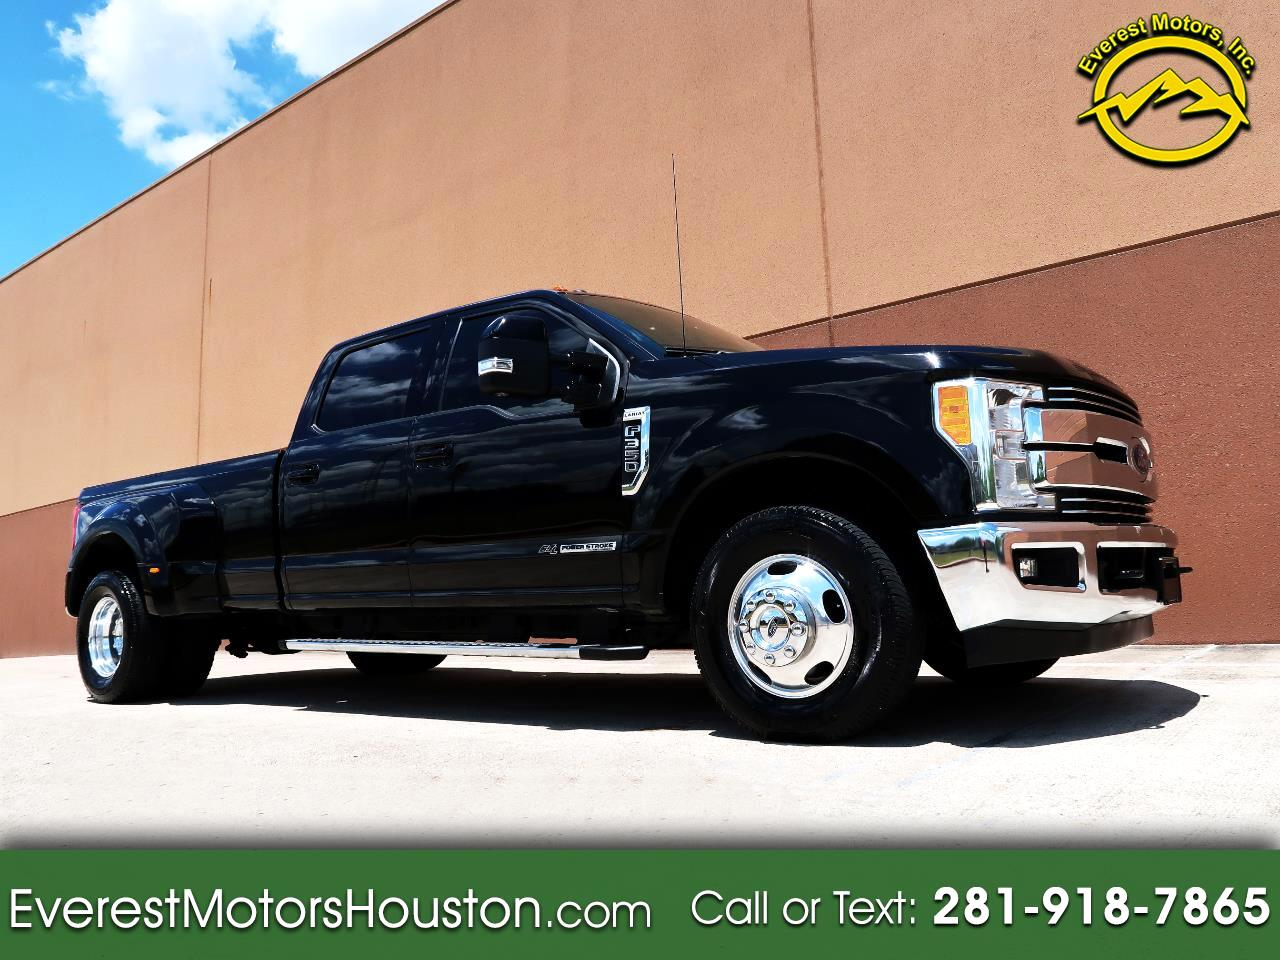 2017 Ford F-350 SD LARIAT CREW CAB LONG BED 2WD DIESEL NAV CAM